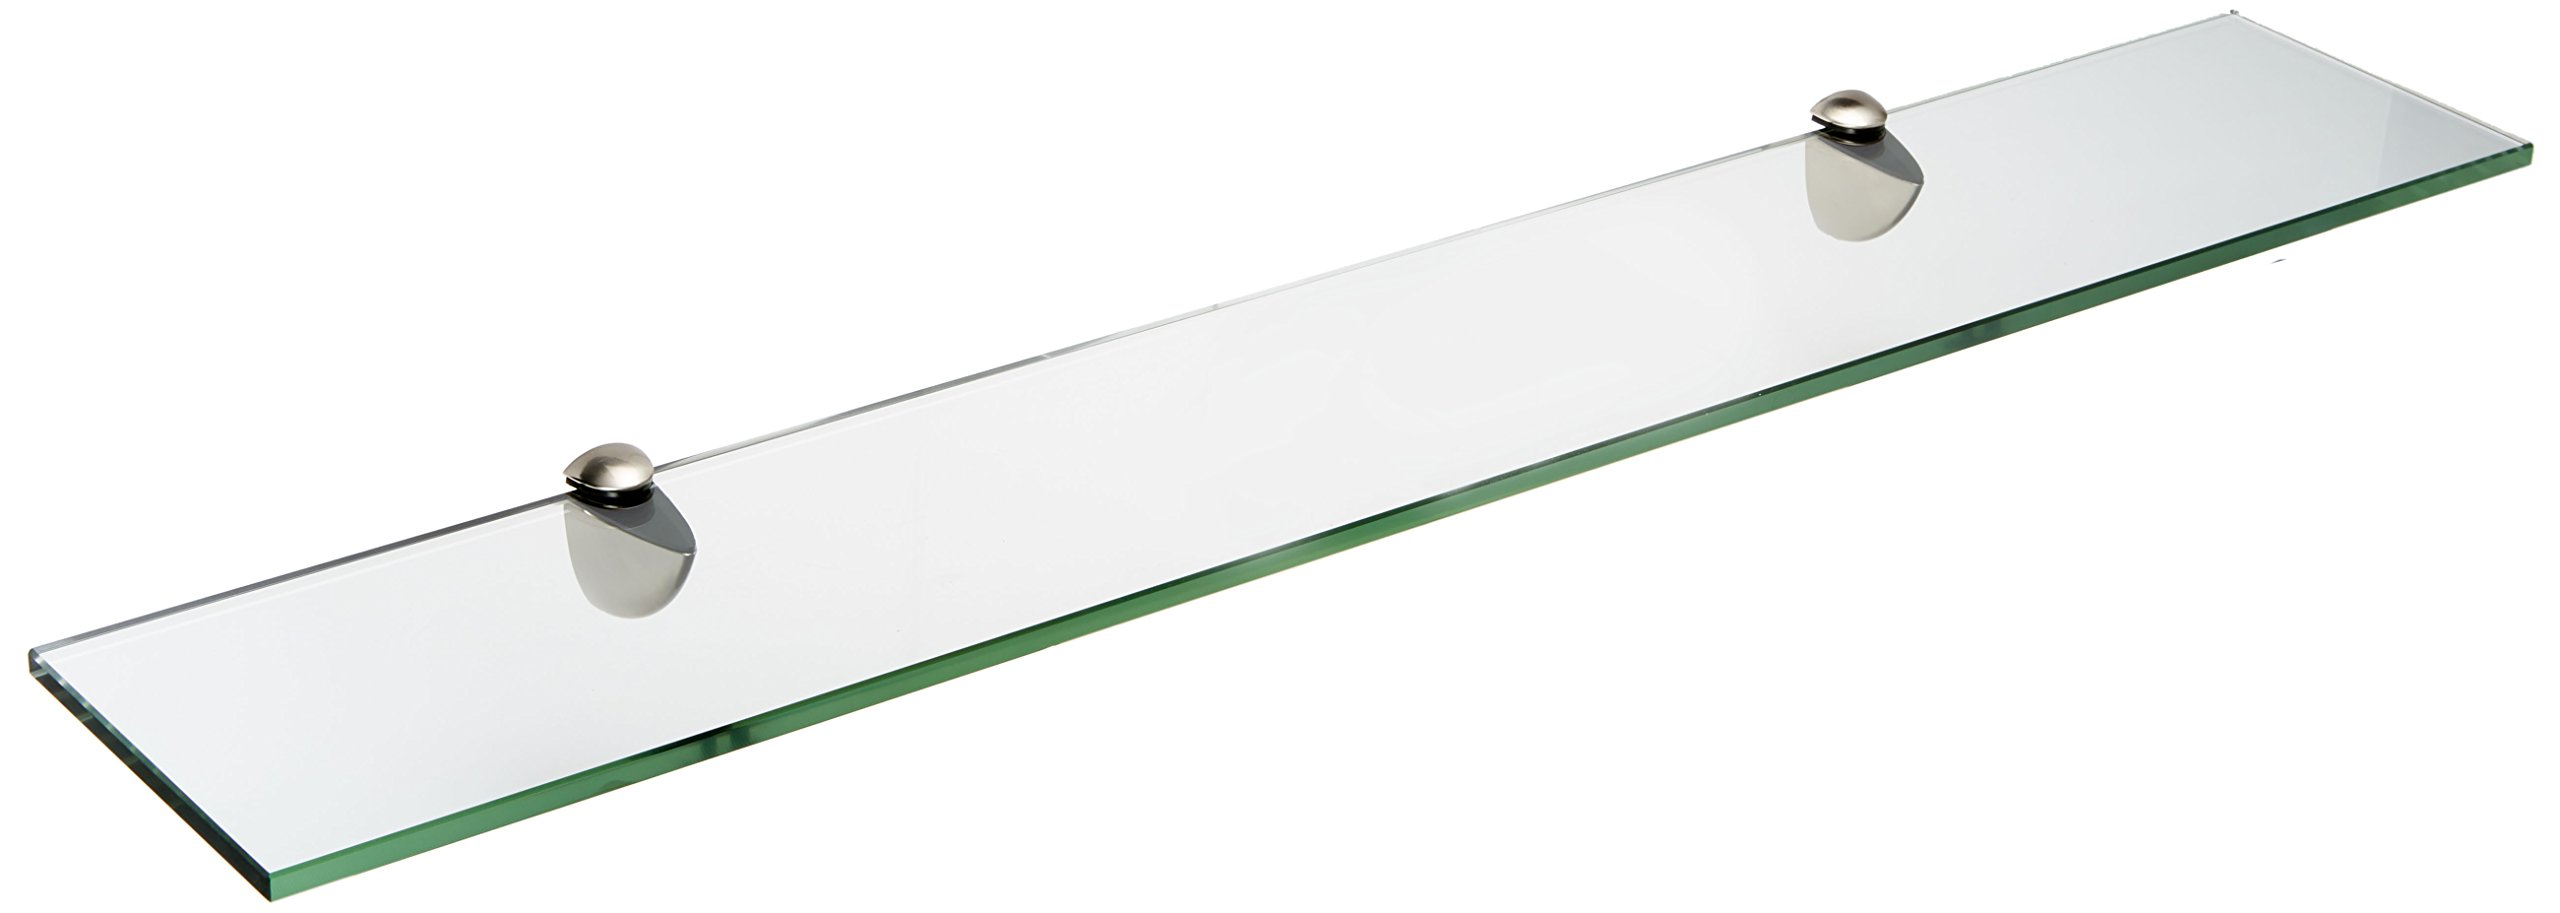 Spancraft Glass Peacock Glass Shelf, Brushed Steel, 6 x 36